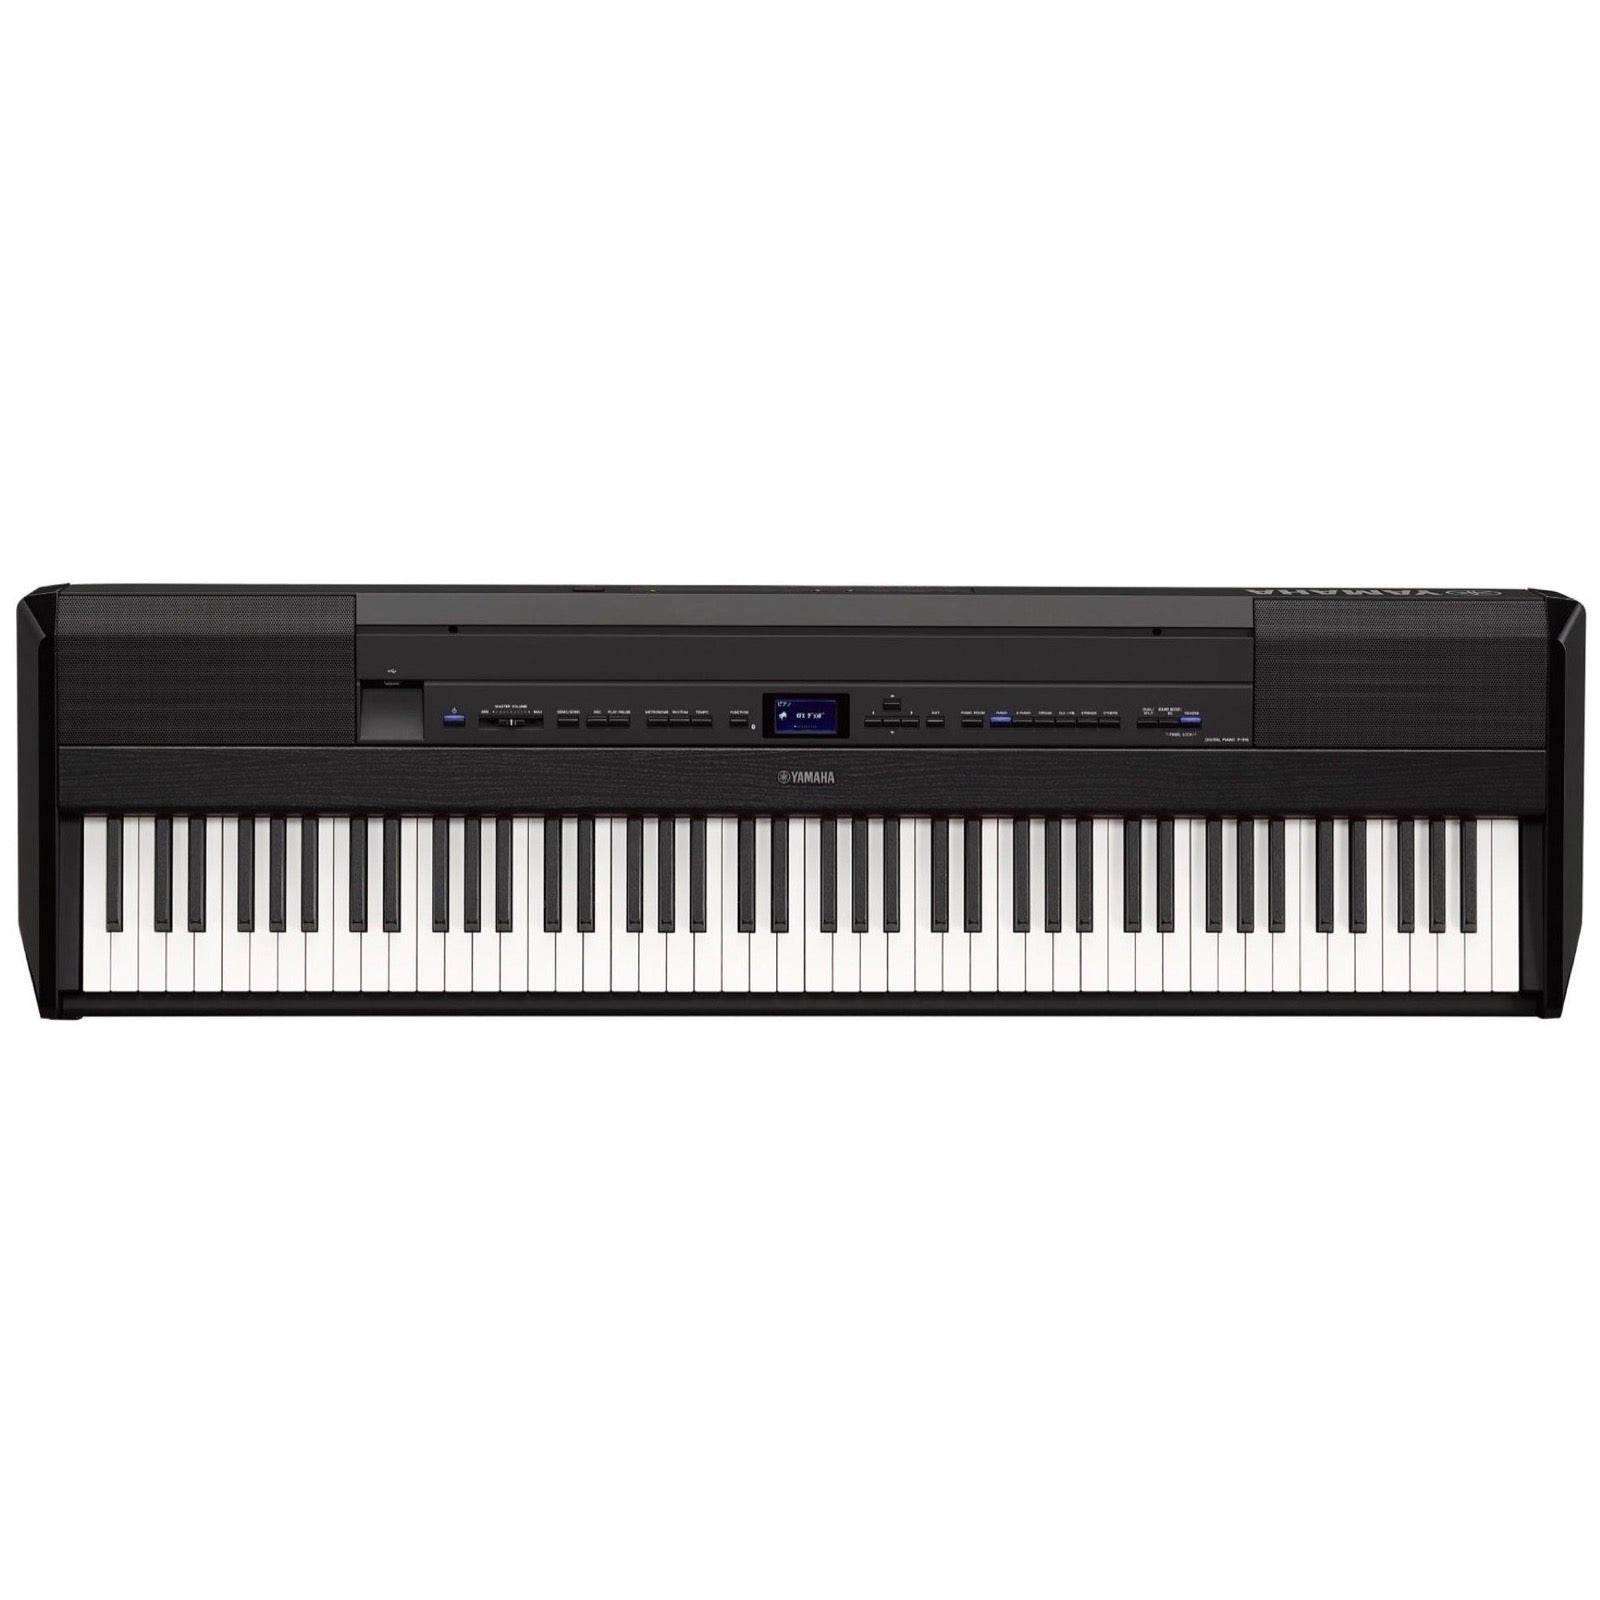 Yamaha P-515 Digital Piano, 88-Key, Black